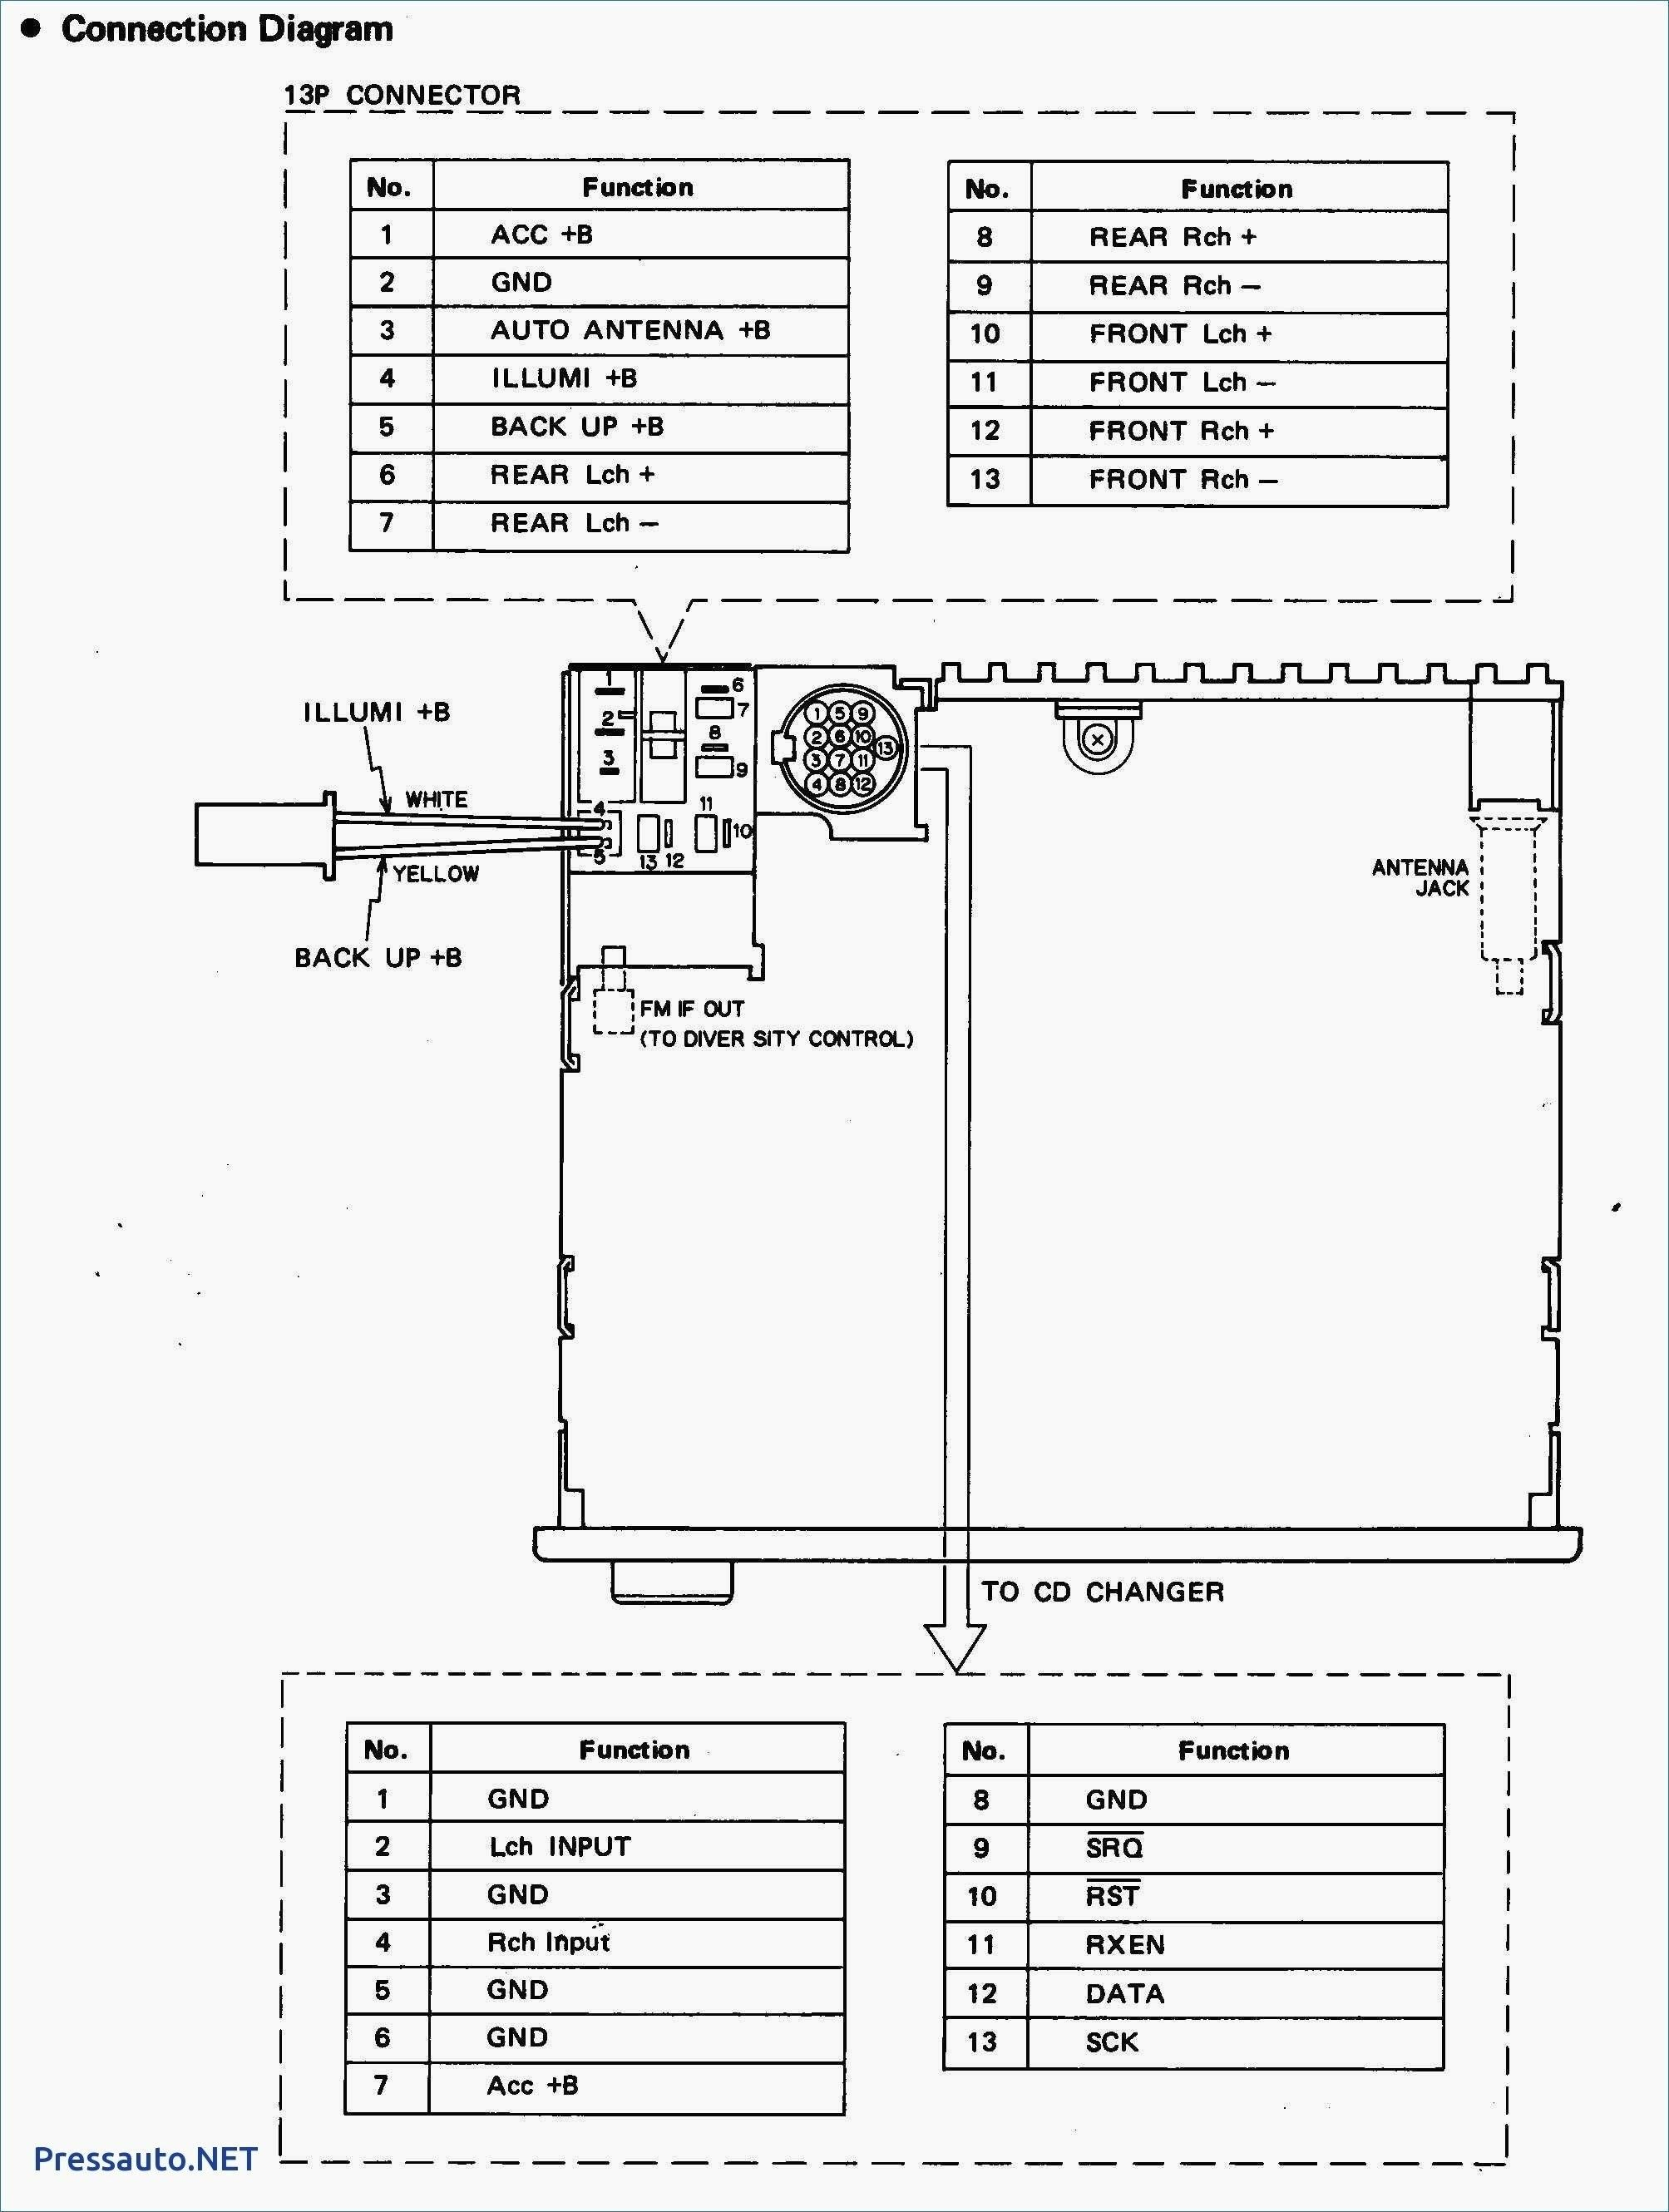 Unique Wiring Diagram Avic N1 Car Dvd Player Con Imagenes